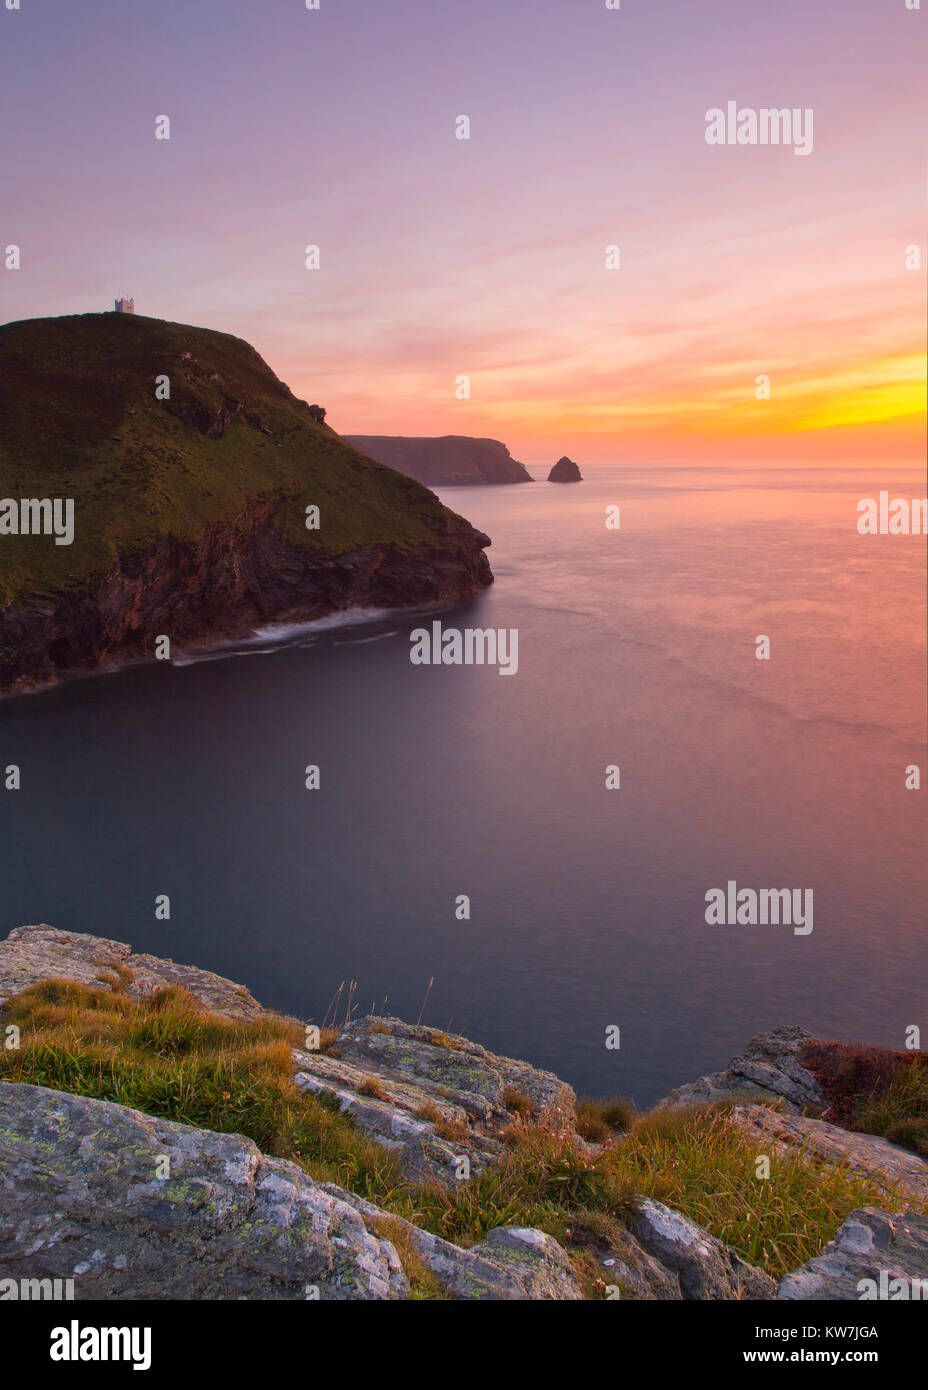 Sunsetting over water off Boscastle, Cornwall - Stock Image